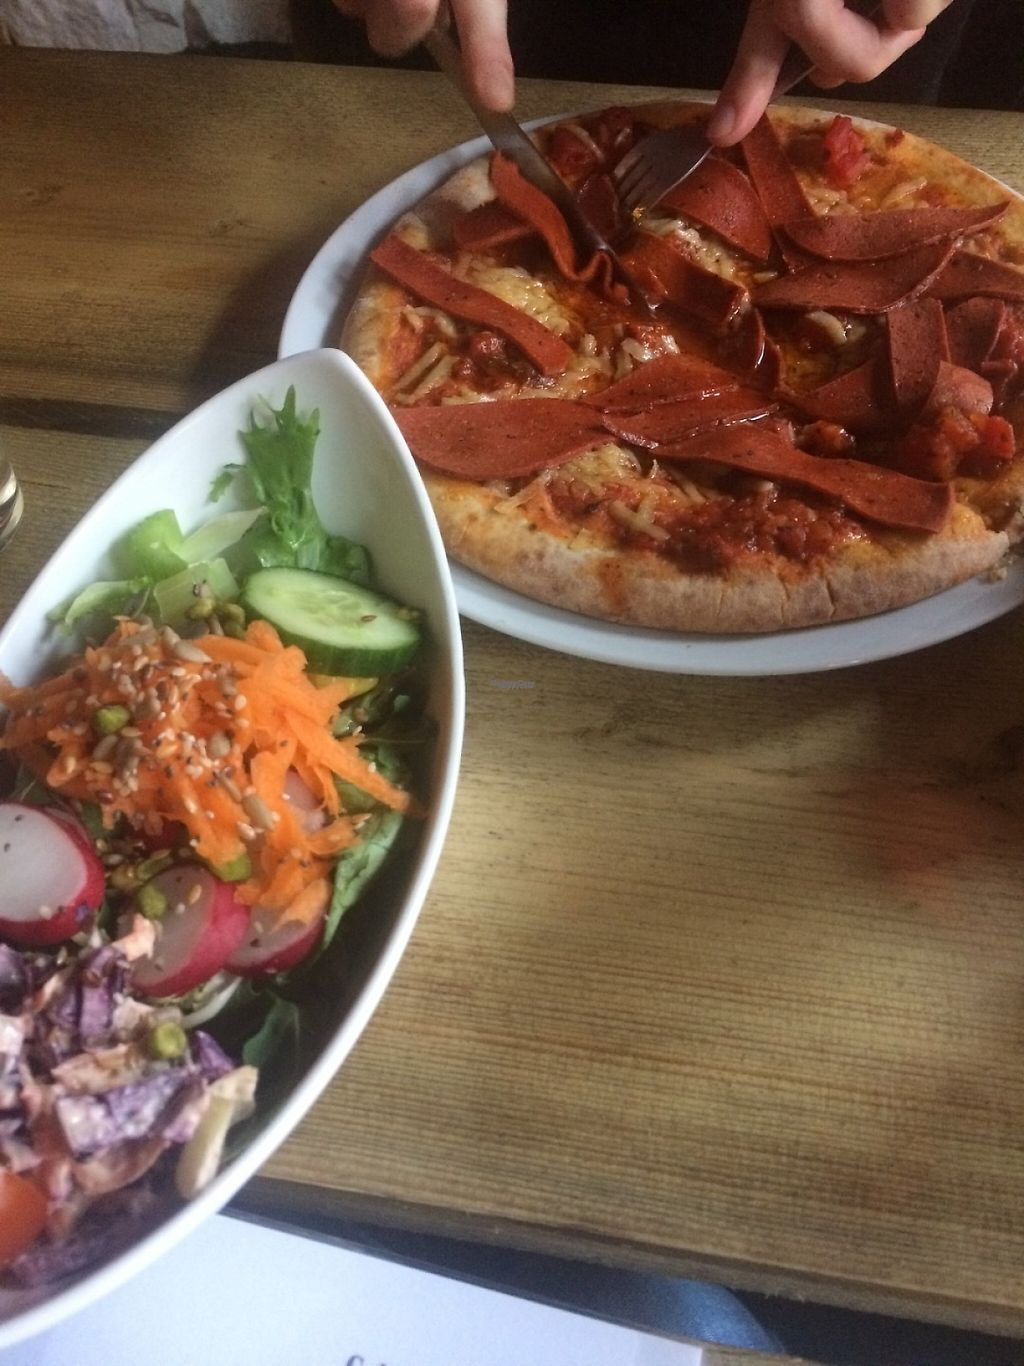 "Photo of Calf Sanctuary Cafe  by <a href=""/members/profile/DalmaF"">DalmaF</a> <br/>Pepperoni pizza with salad <br/> March 23, 2017  - <a href='/contact/abuse/image/35491/239887'>Report</a>"